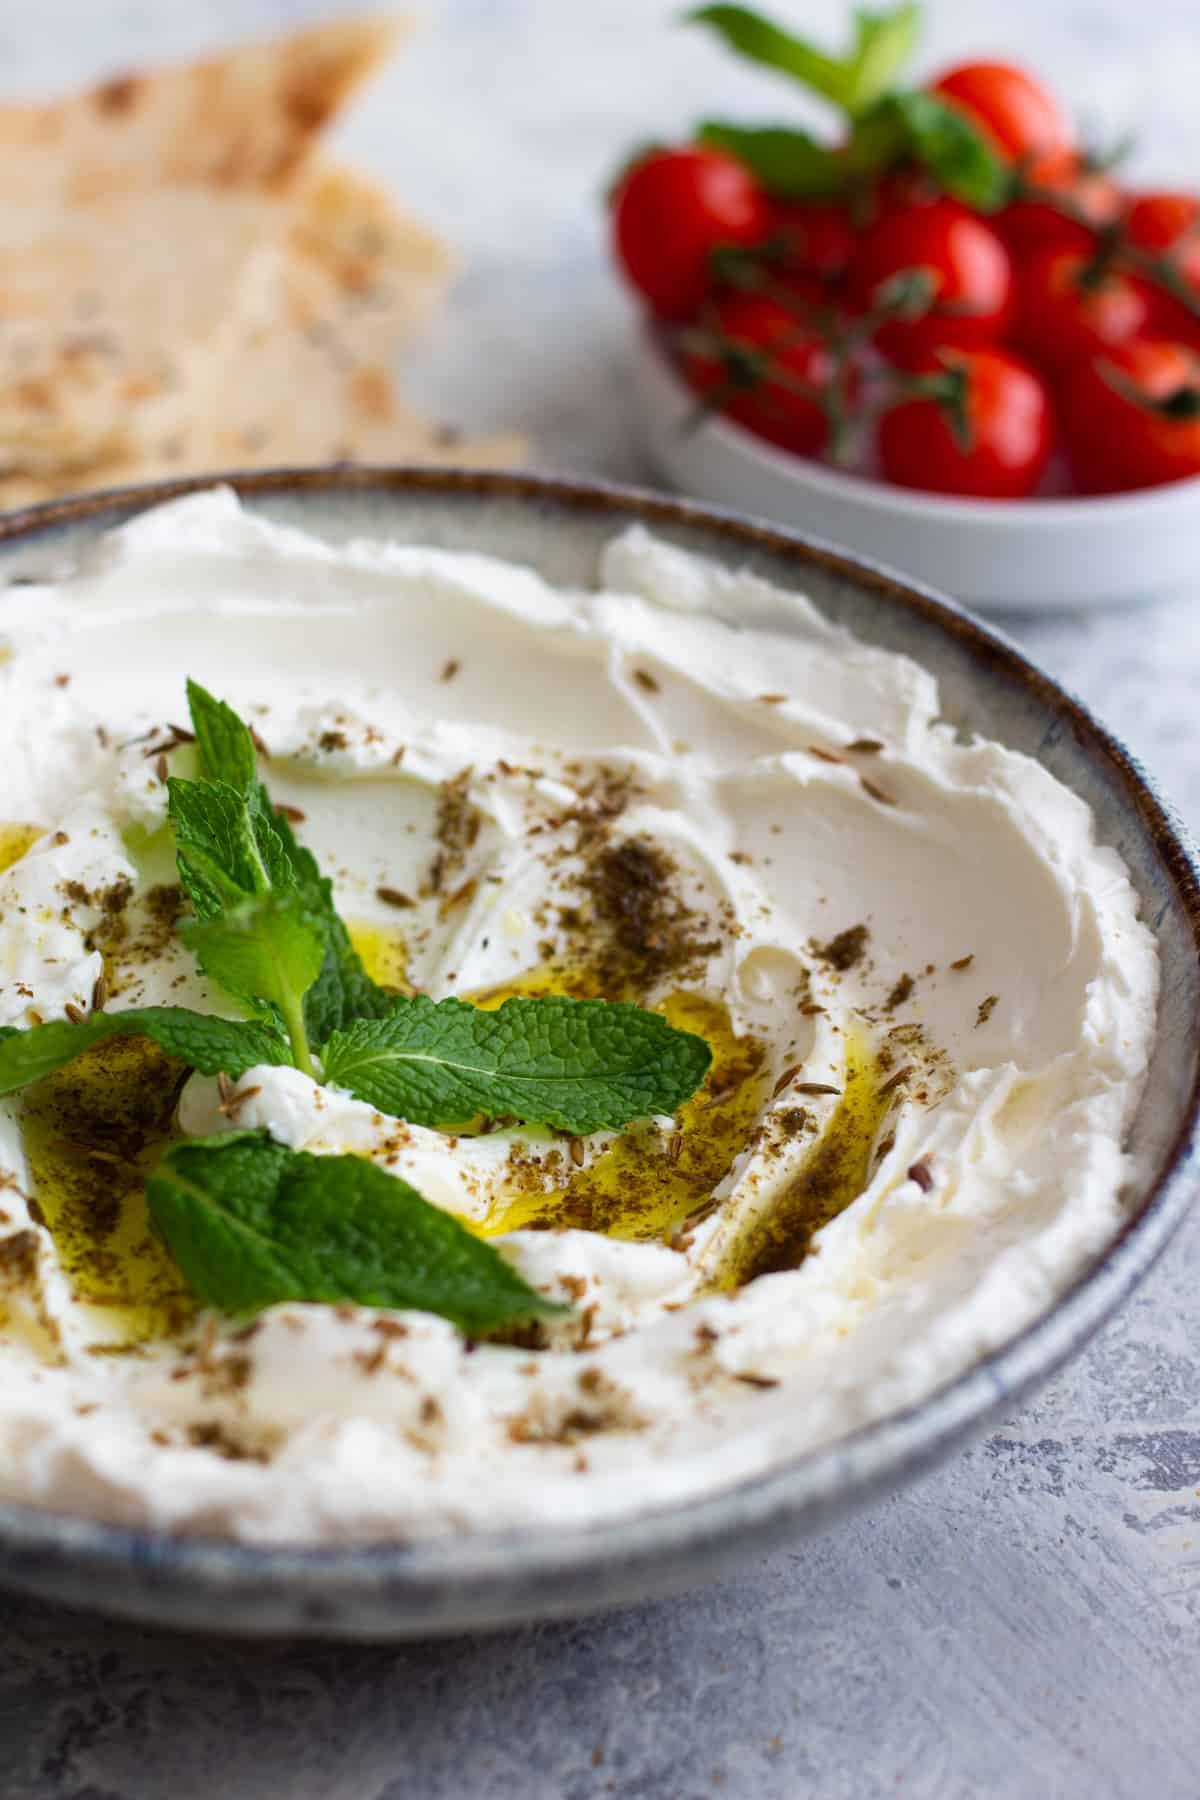 drizzle yogurt cheese with olive oil and top with zaatar fro a classic middle eastern treat.